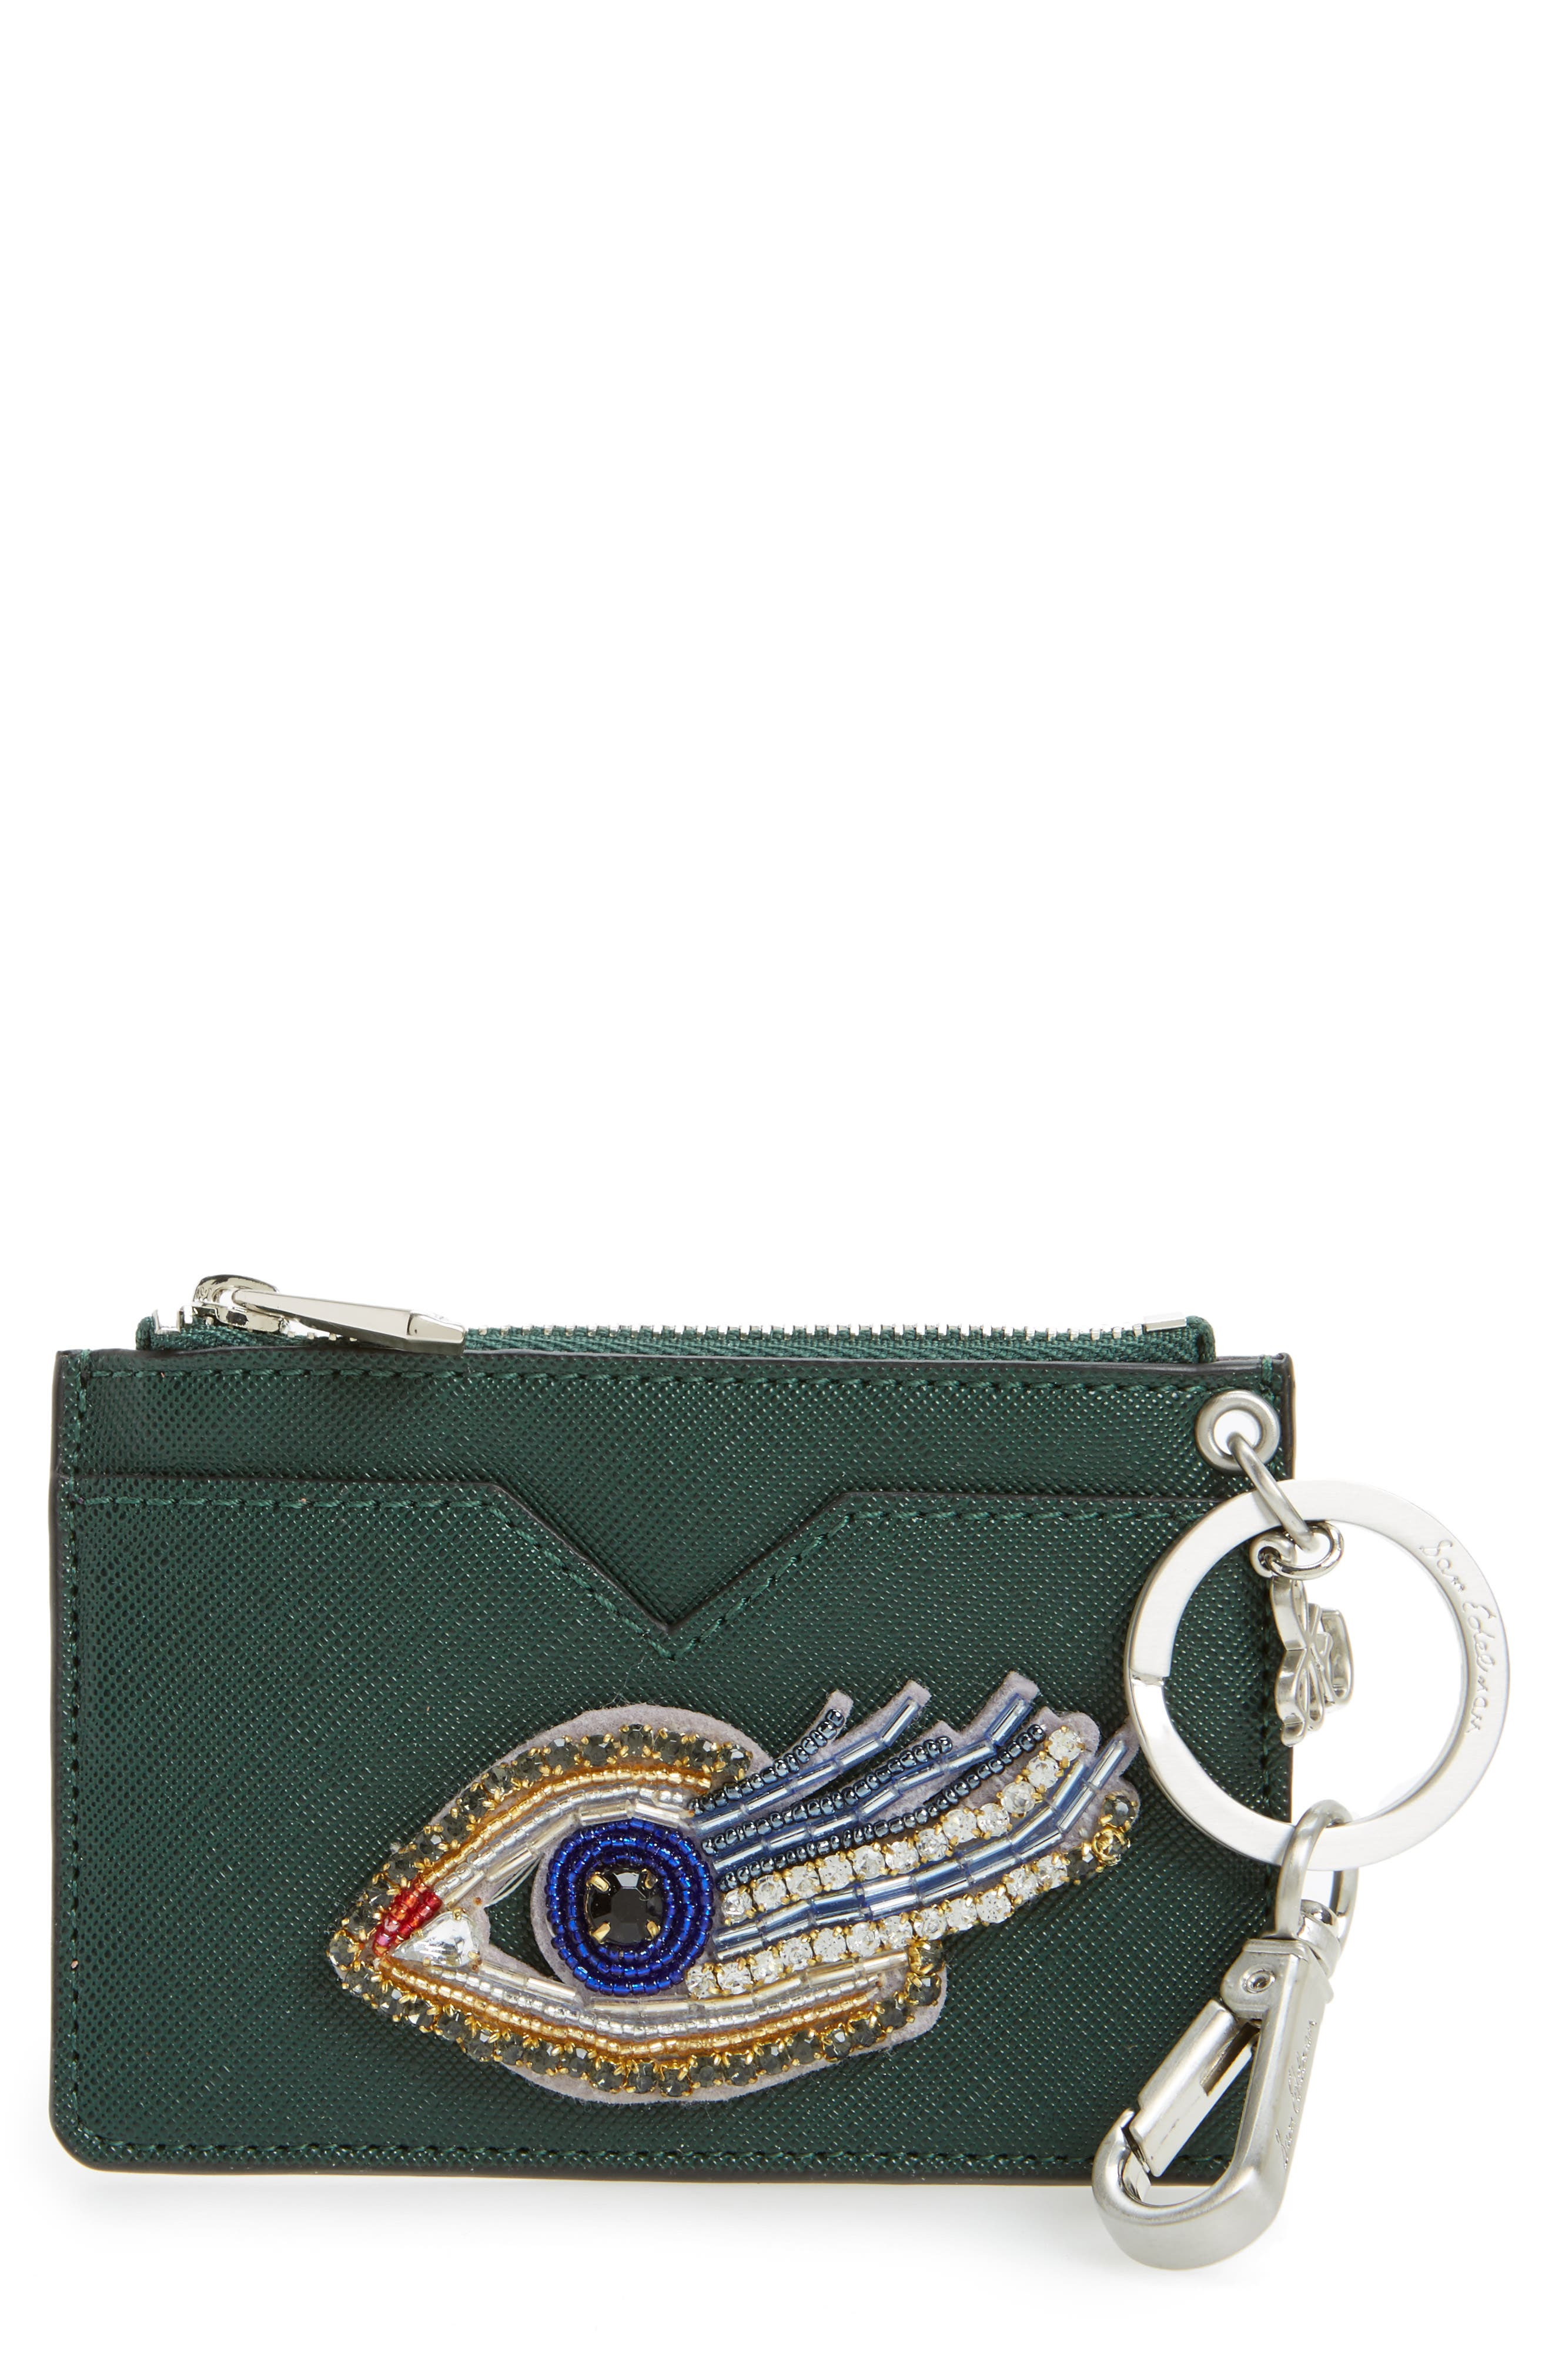 Carter Eye Embellished Faux Leather Card Case,                             Main thumbnail 1, color,                             Eden